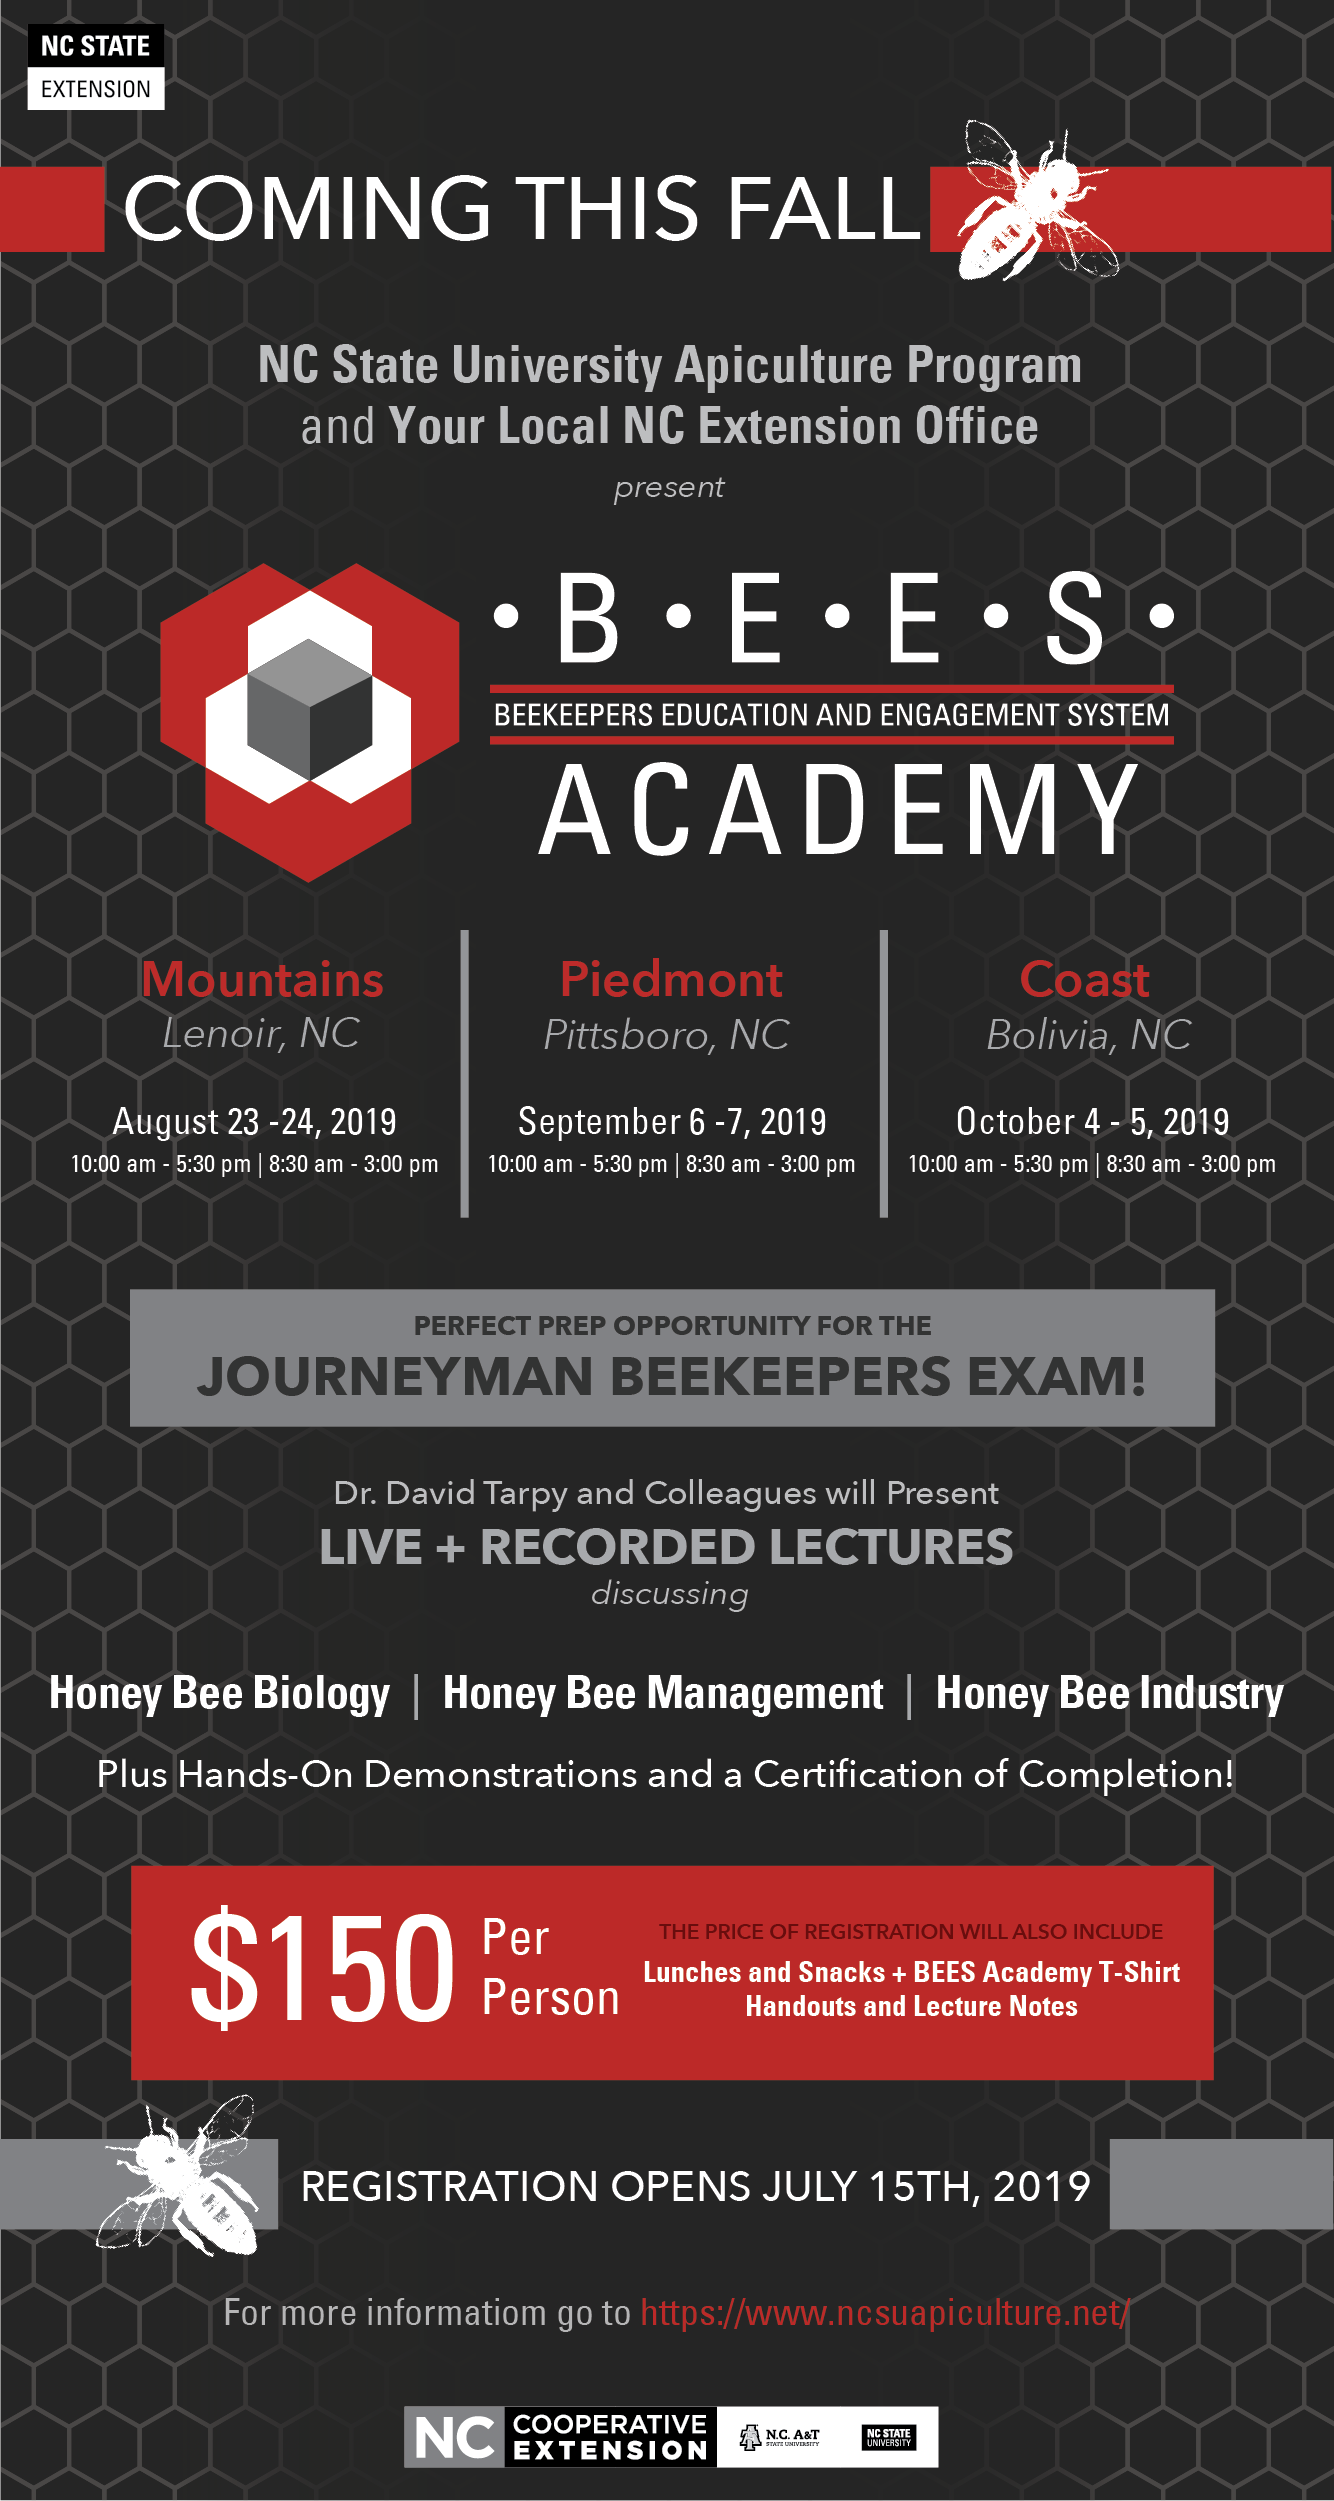 BEES Academy flyer image